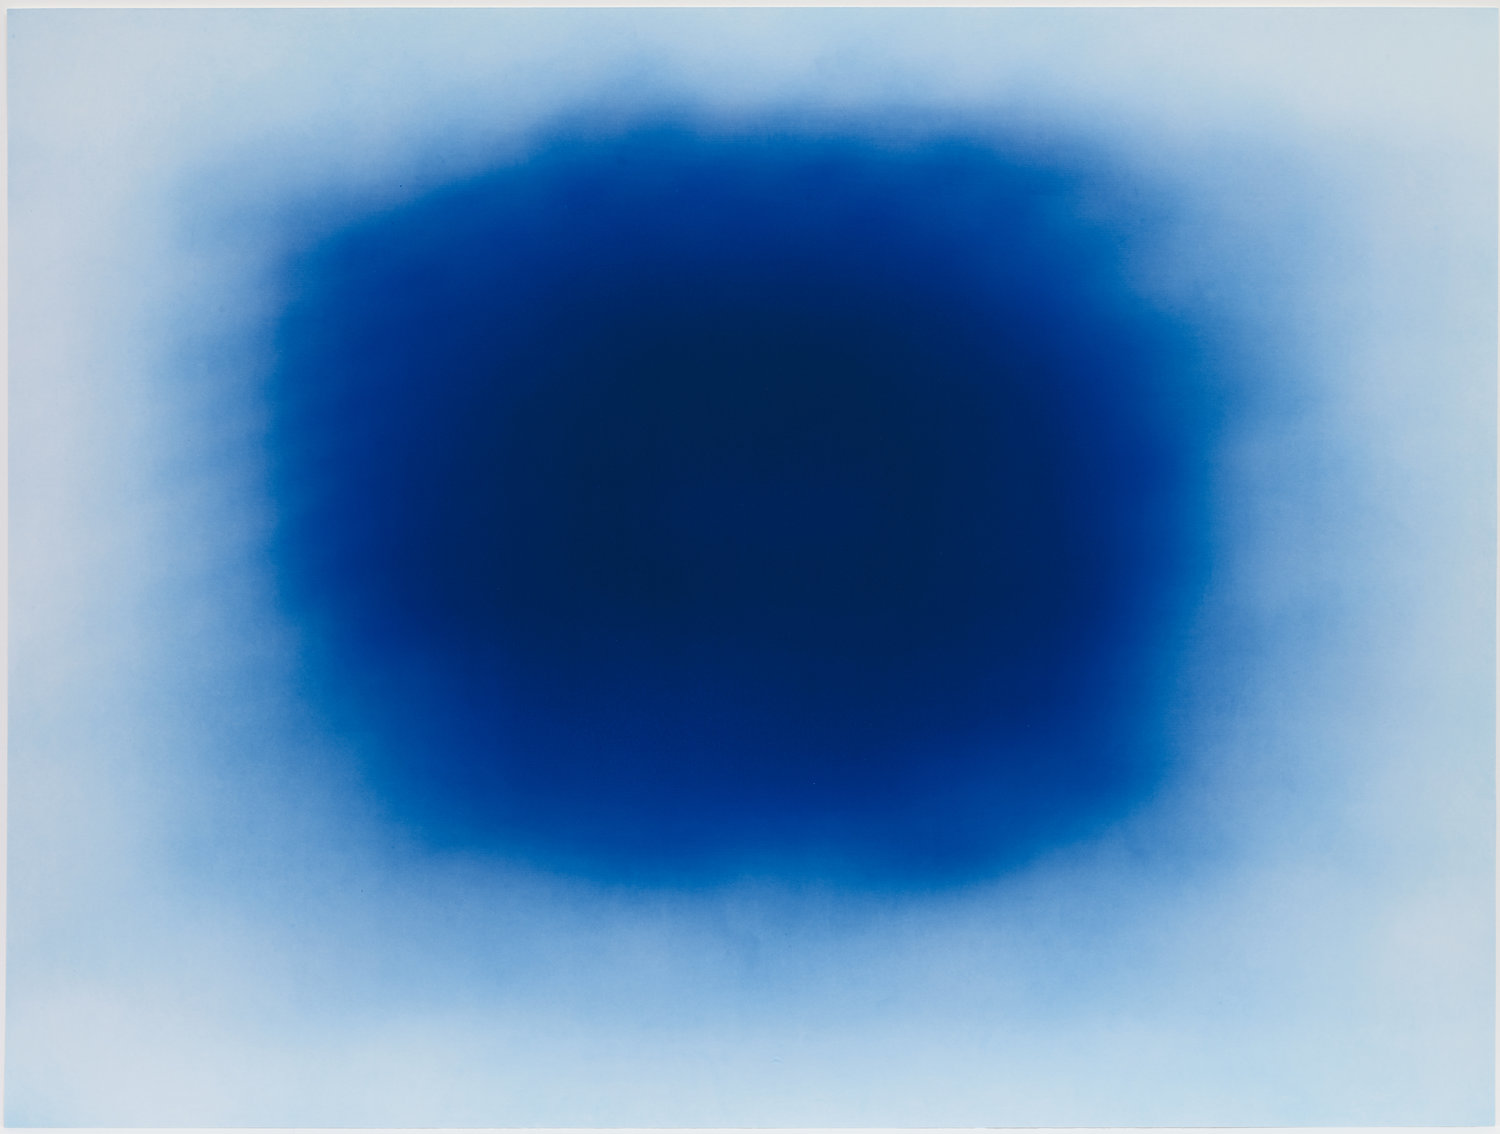 One of a series of ten prints titled 'Breathing Blue' by Anish Kapoor installed at Snowsfields Adolescent Unit.The series,printed on a large scale directly onto dibond,has been installed in a number of different spaces on the unit, in sight of service users, staff and visitors.